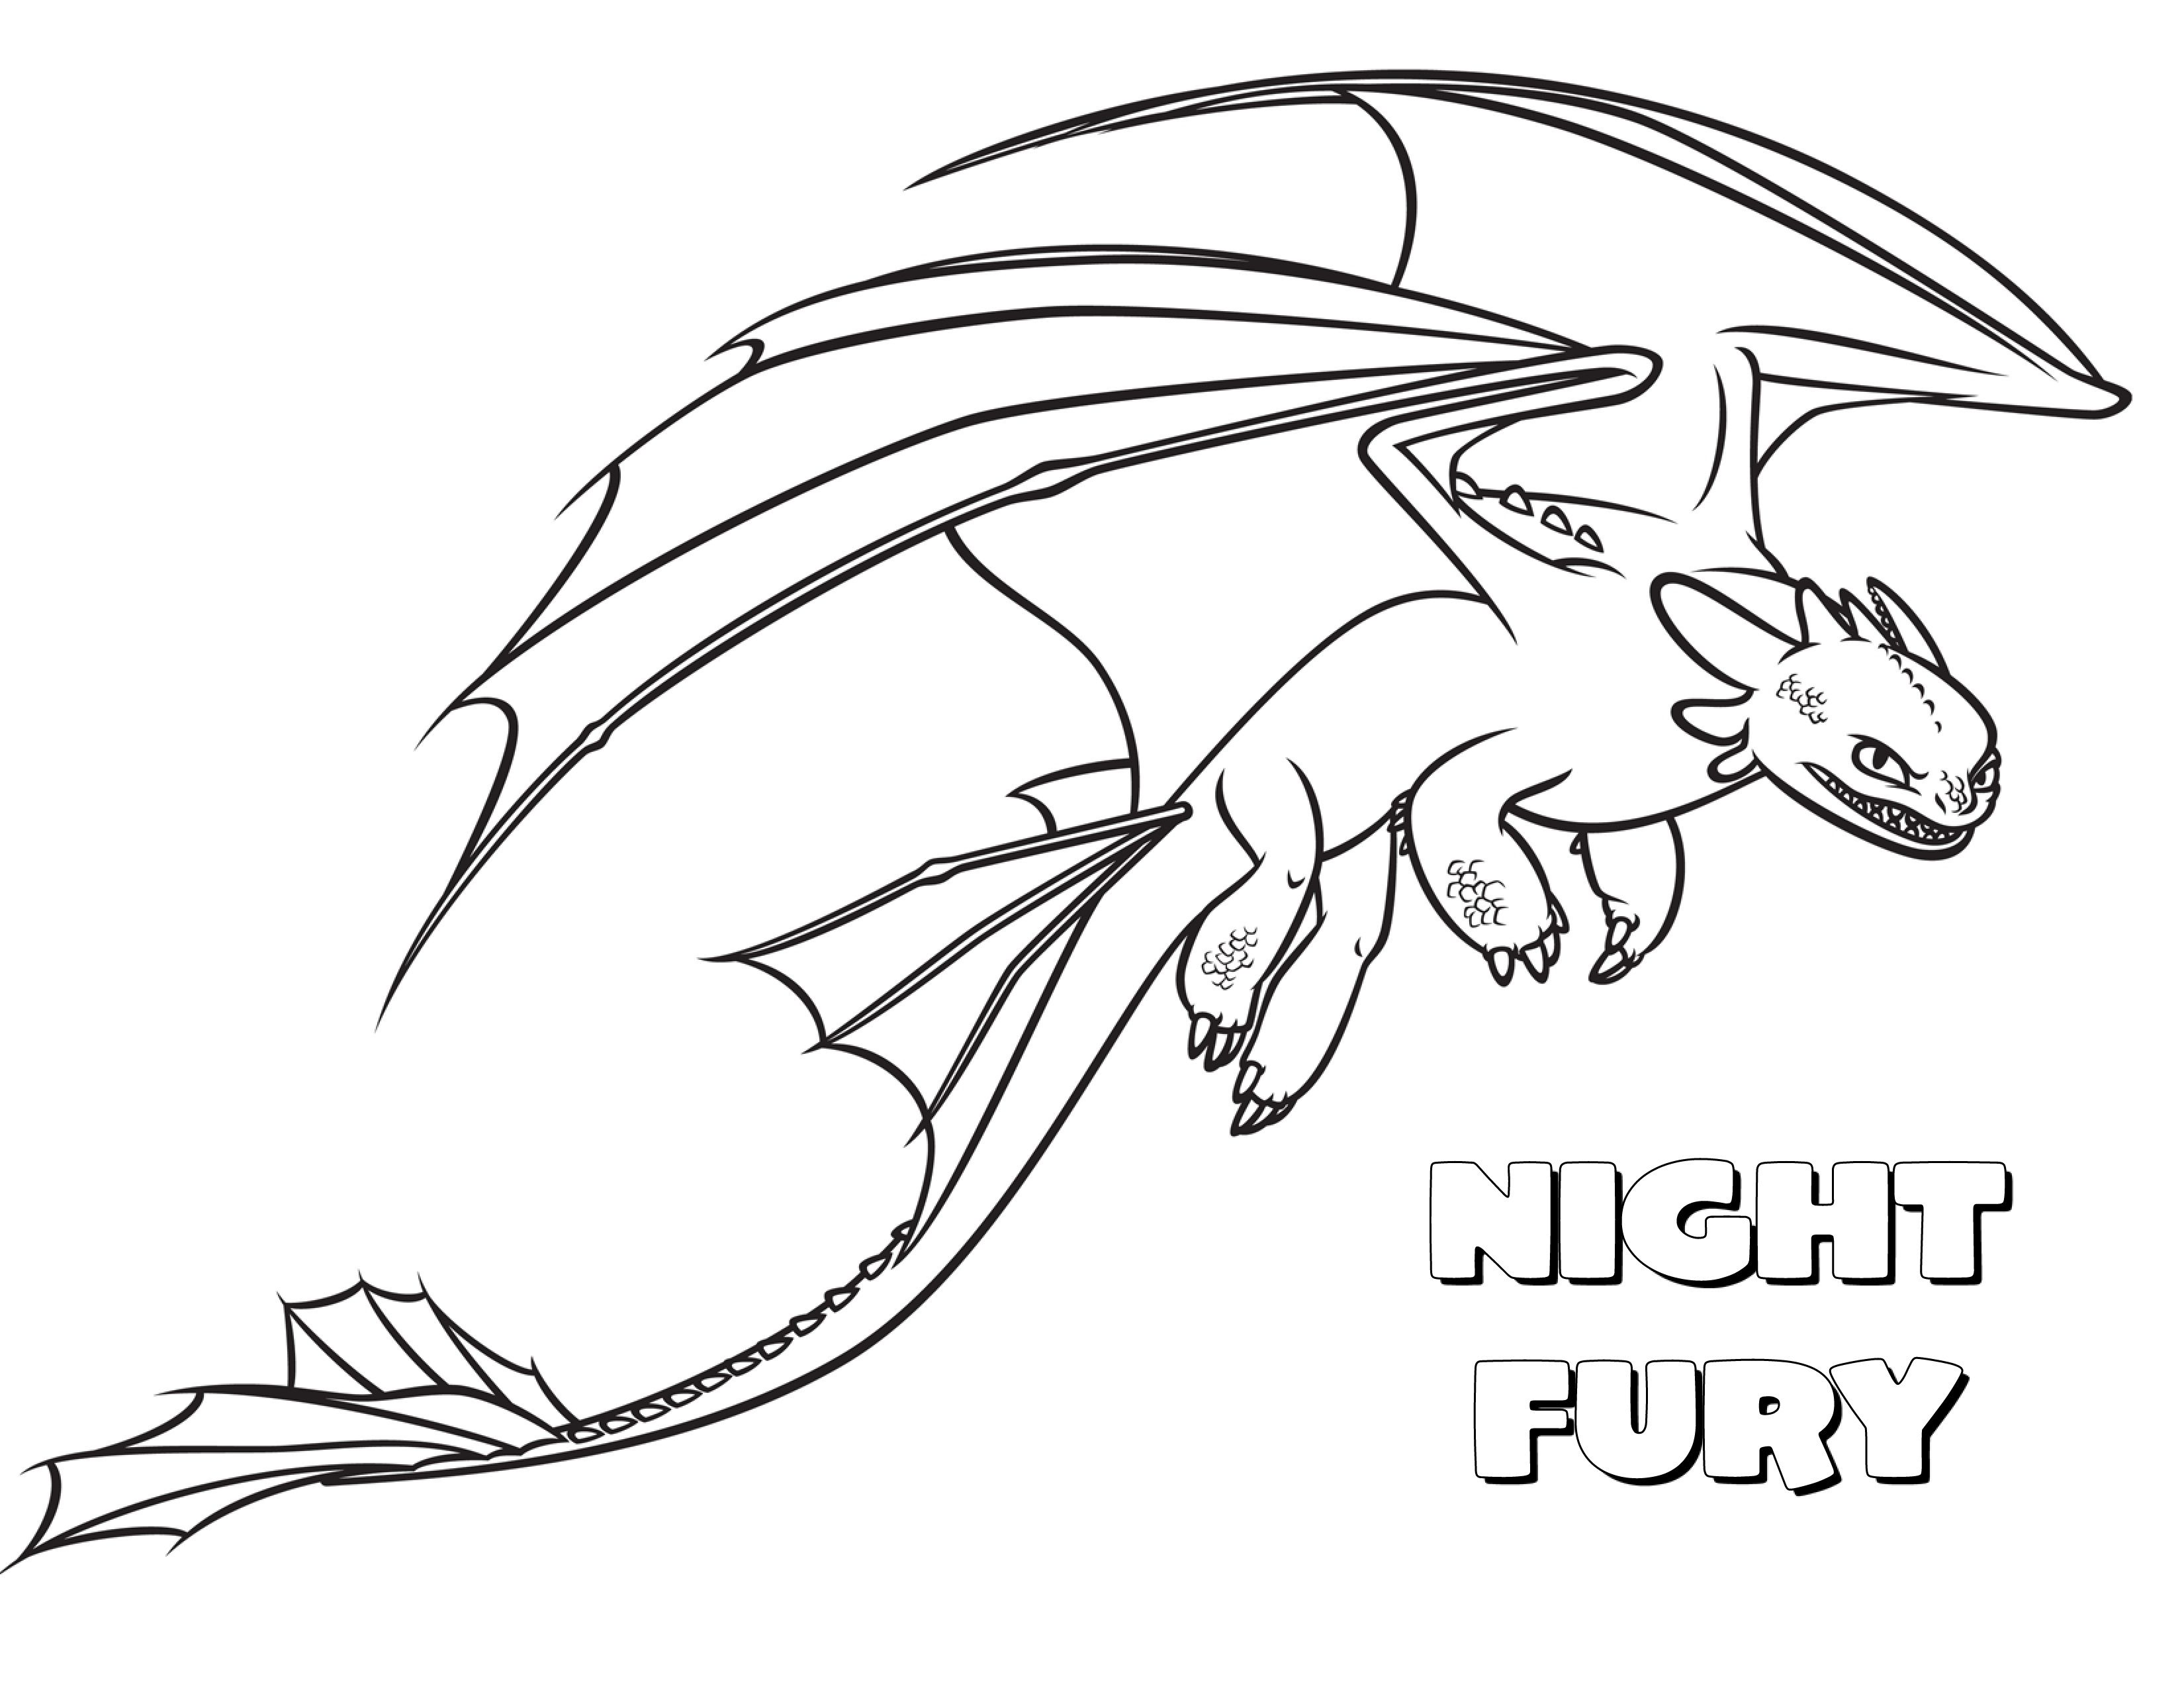 25 Brilliant Image Of How To Train Your Dragon Coloring Pages Albanysinsanity Com How Train Your Dragon Dragon Coloring Page Dragon Drawing